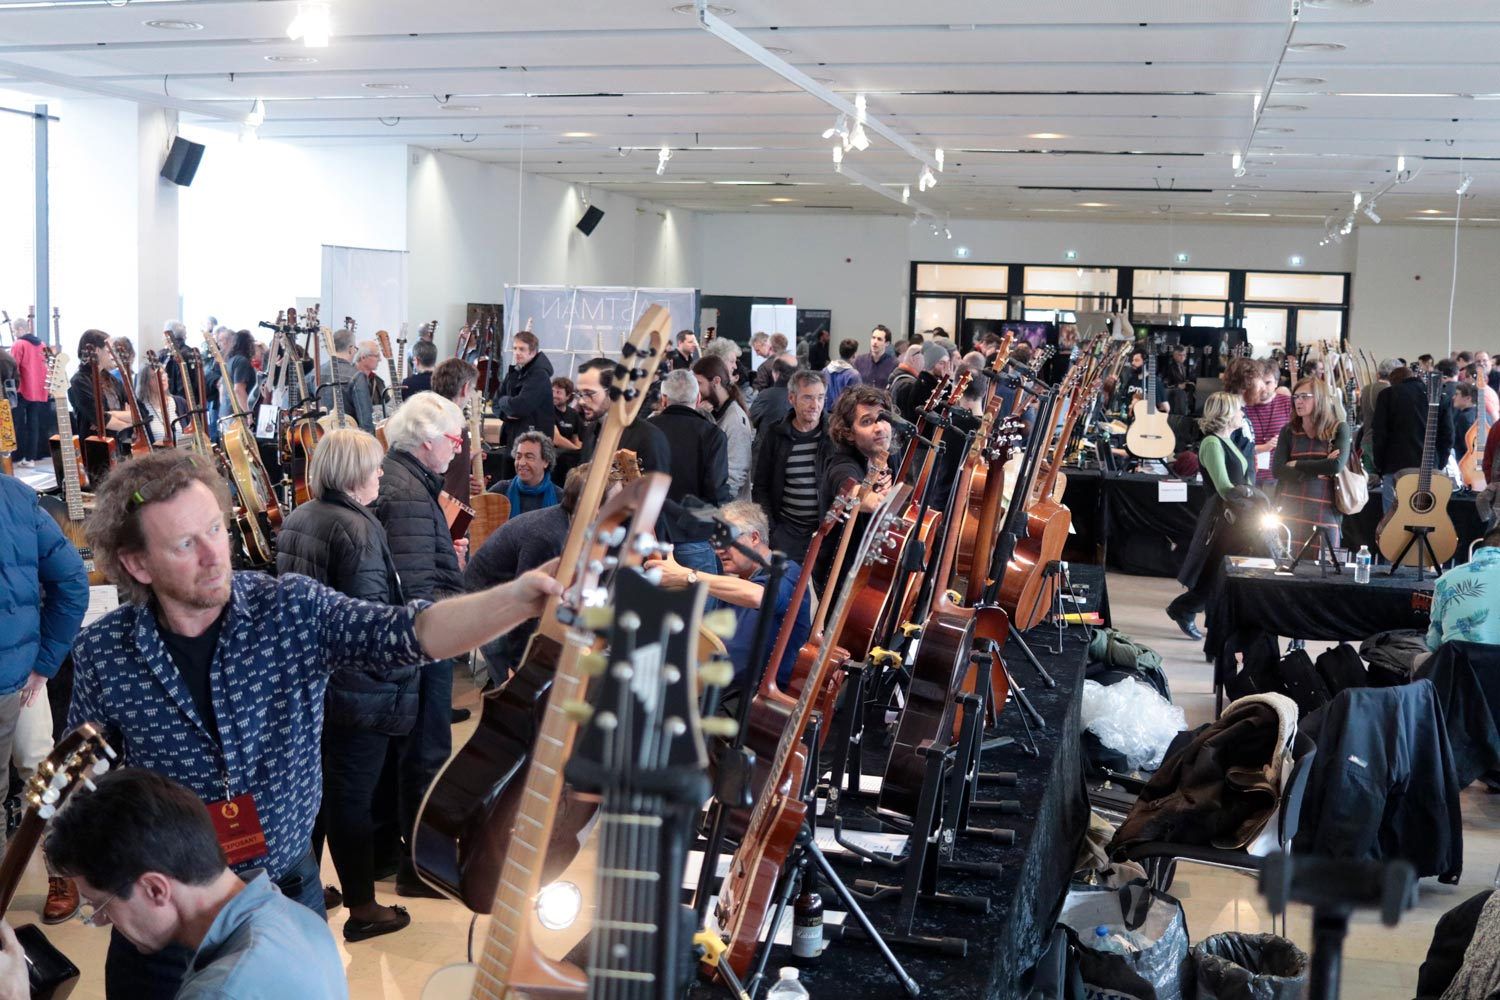 salon guitares au beffroi 2018 montrouge